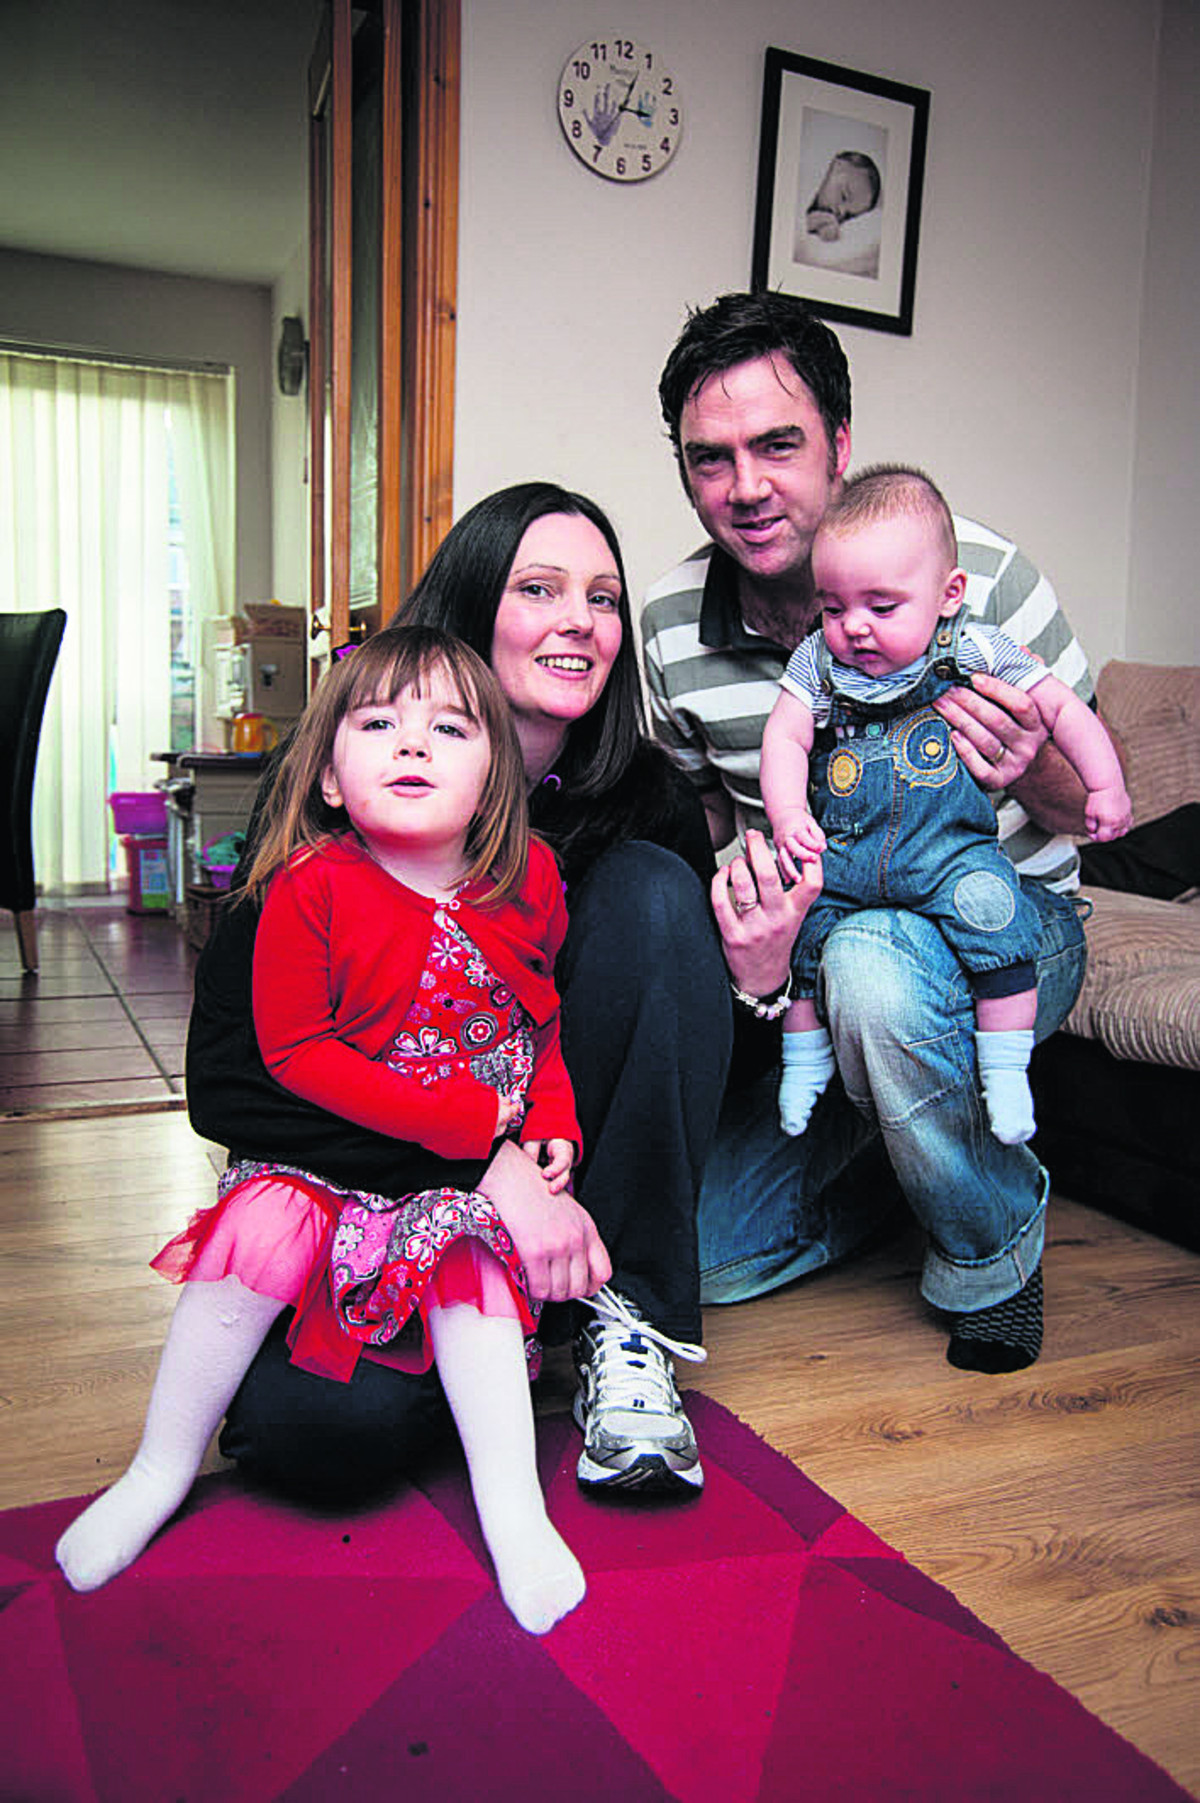 Hayley and James Munro with their children Elizabeth and Matthew